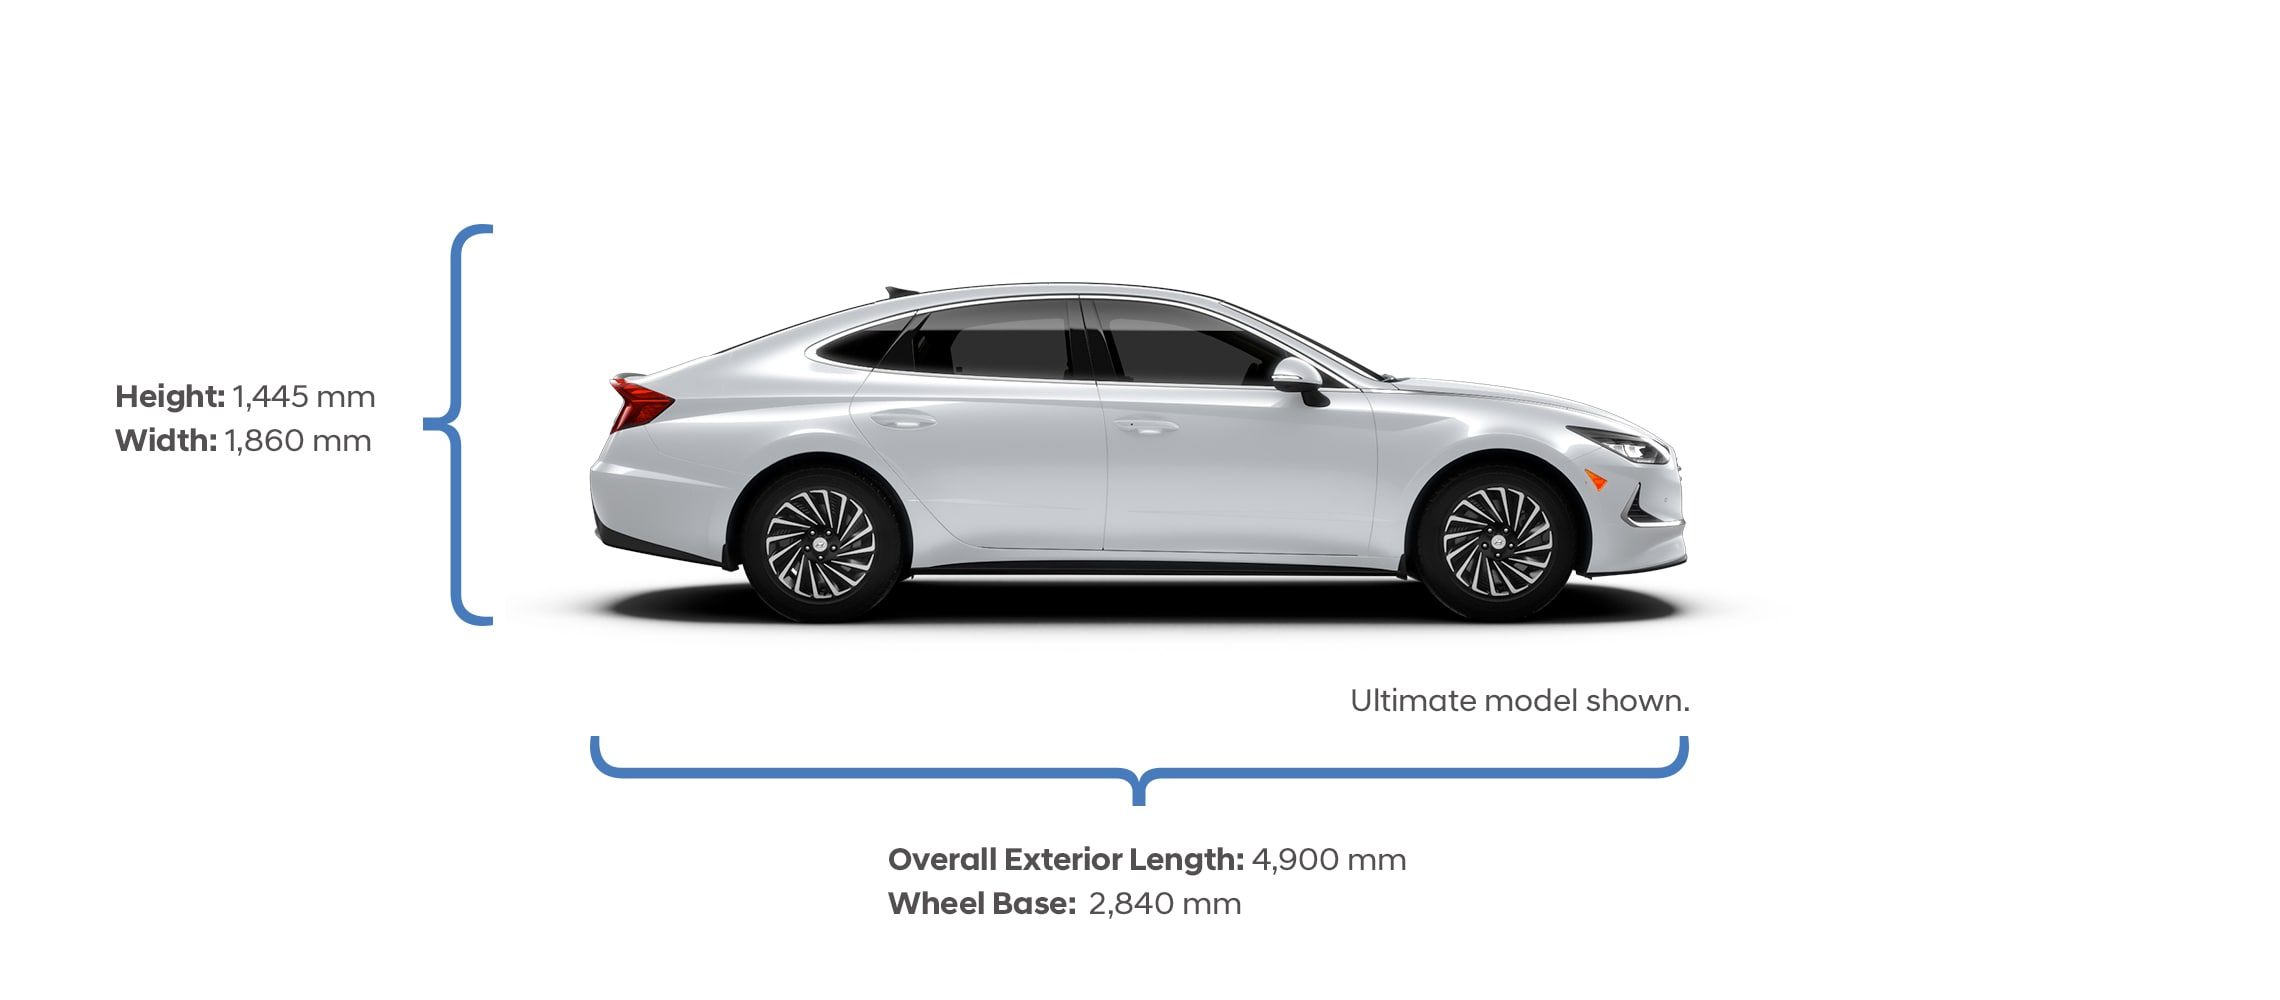 Height and width specifications of the 2020 Sonata Hybrid.